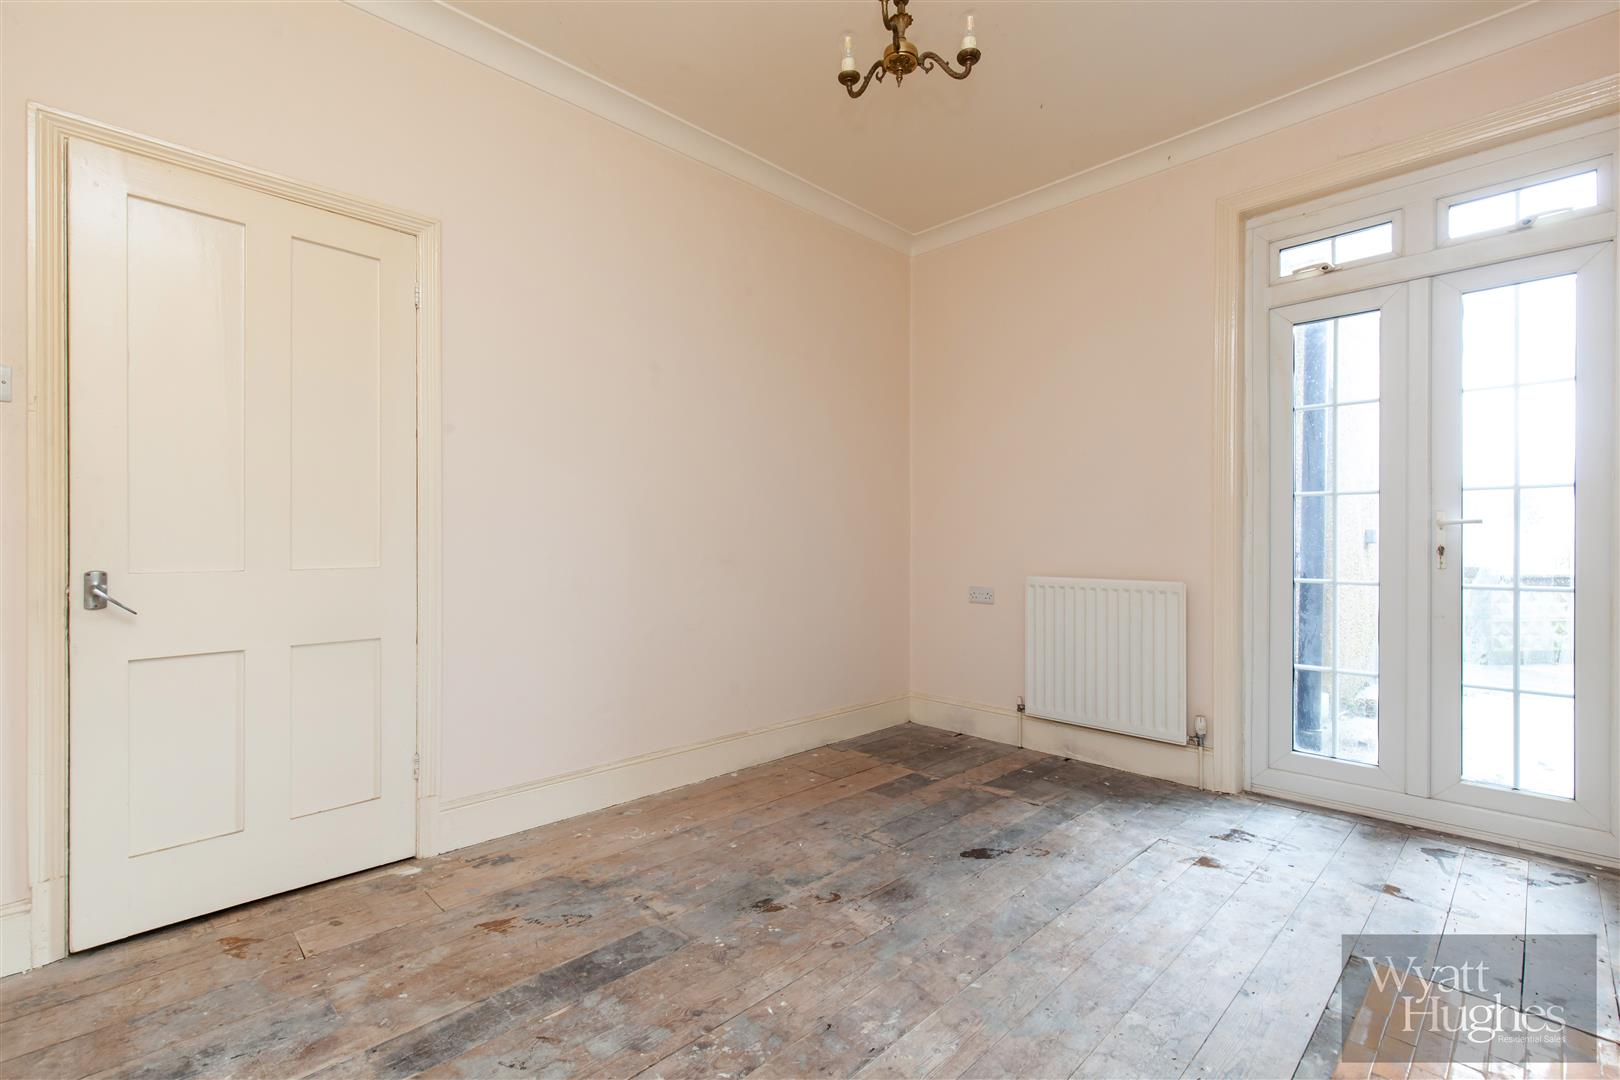 3 bed end-of-terrace-house for sale in Burry Road, St. Leonards-On-Sea  - Property Image 15